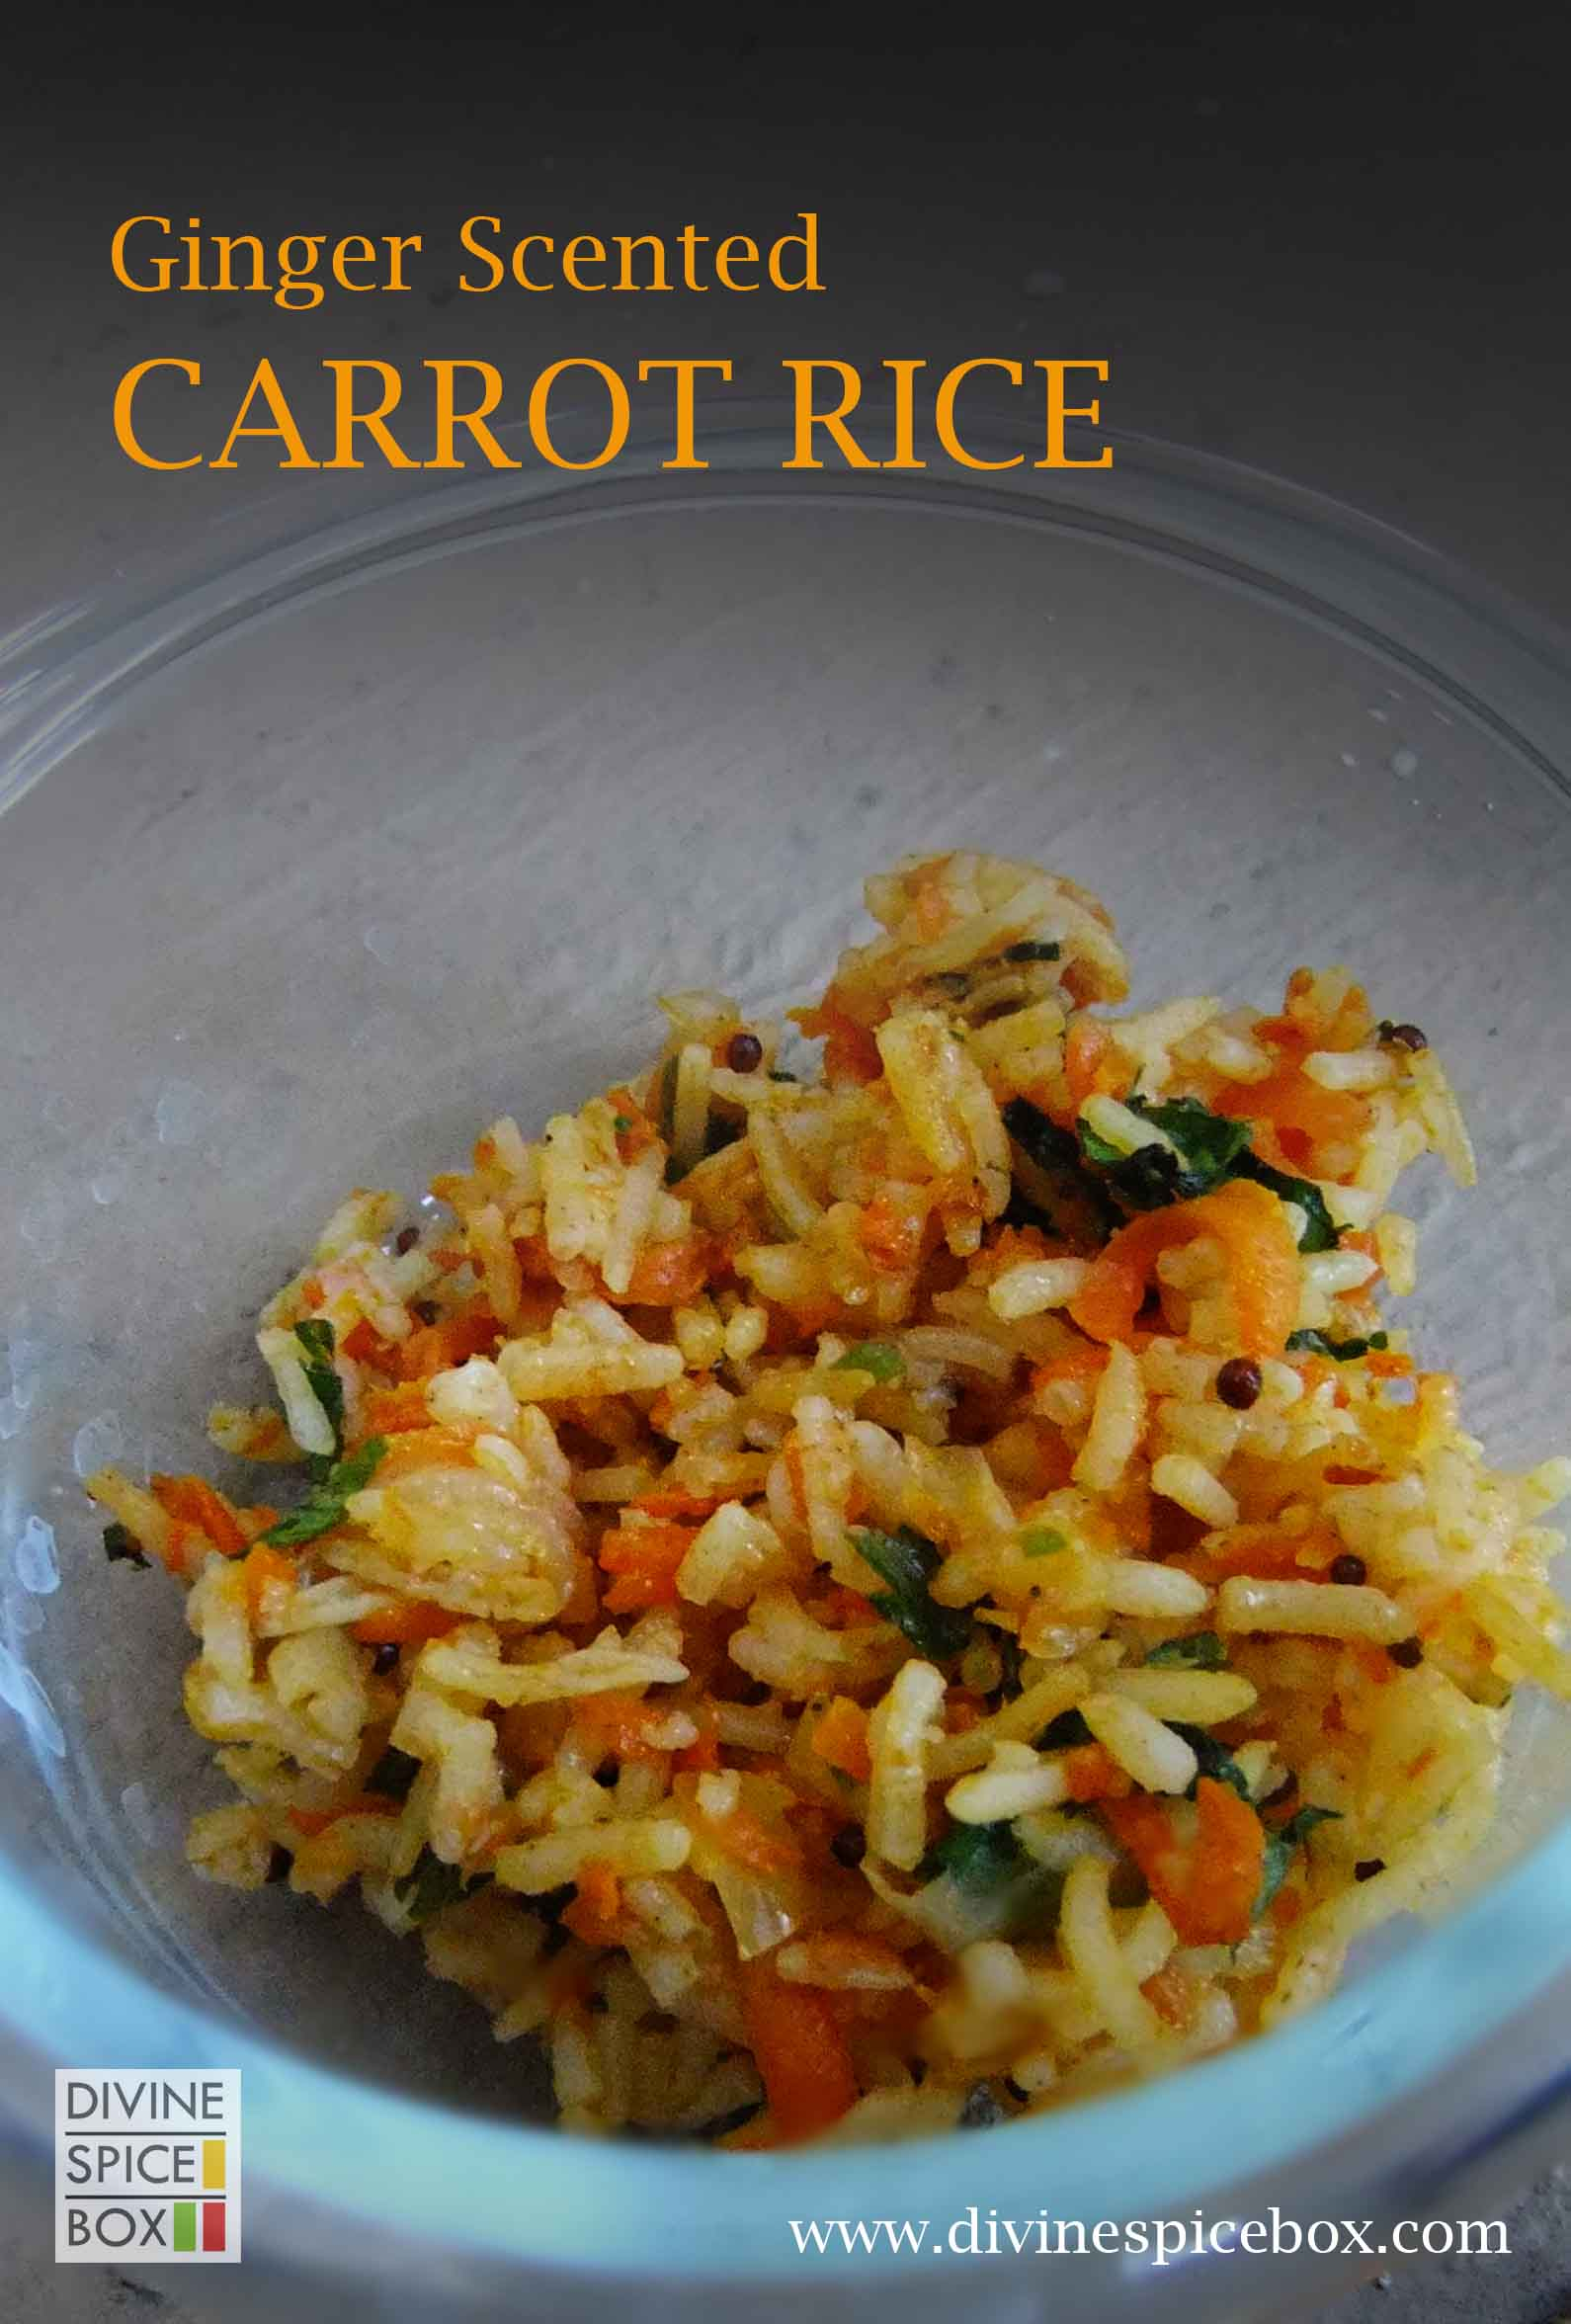 ginger scented carrot rice copy